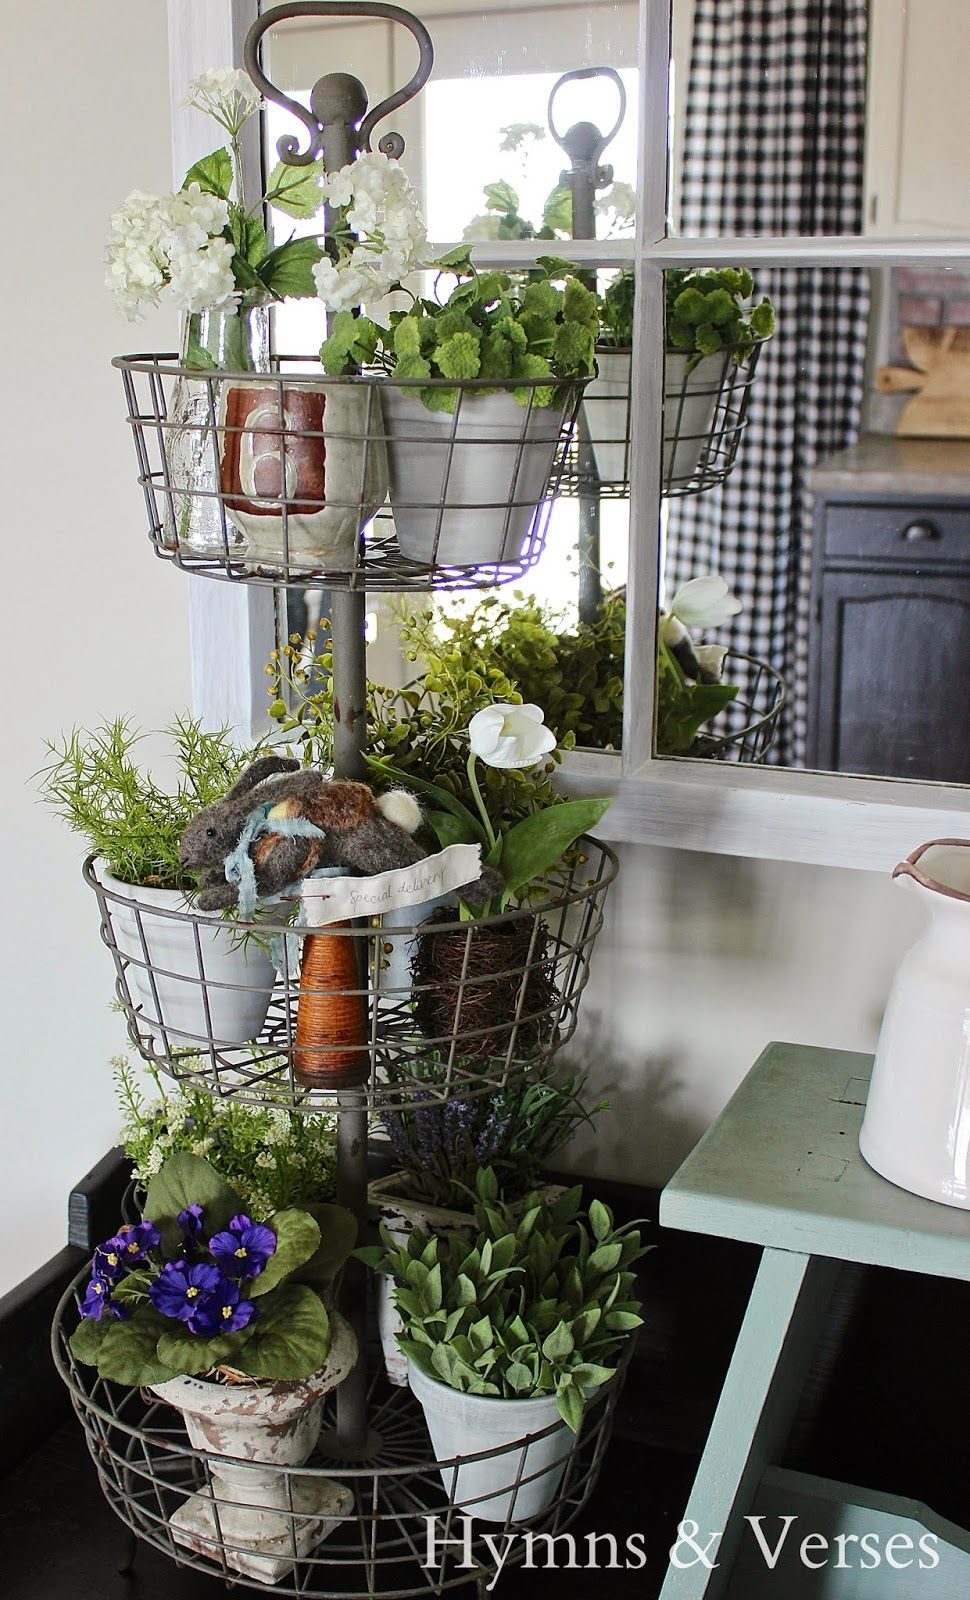 3 Tier Wire Stand with Spring Plants - Hymns and Verses | For the ...